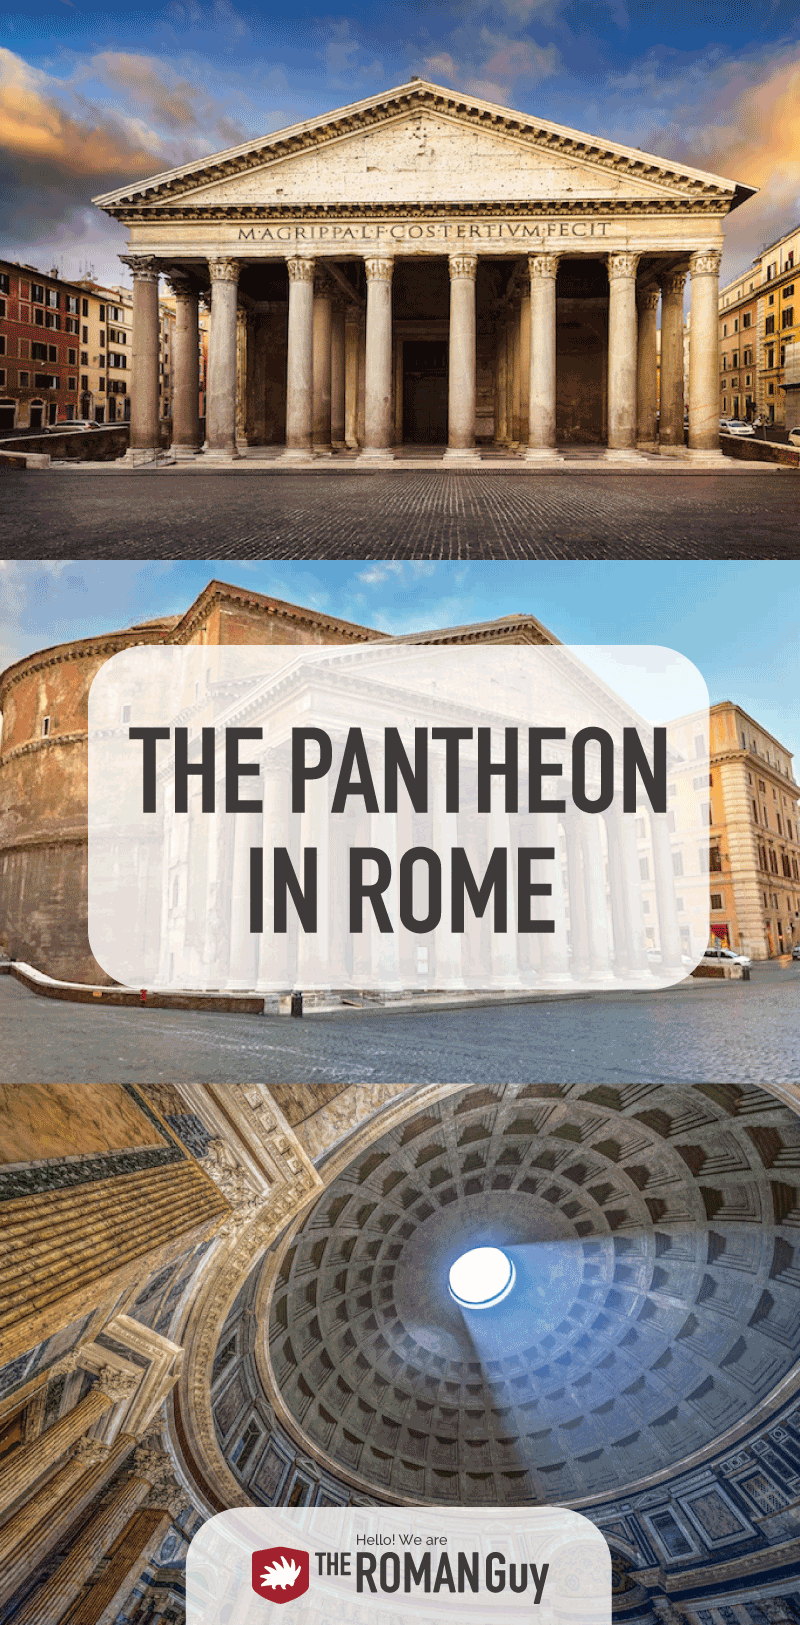 DISCOVER ROME'S PANTHEON: But what is the Pantheon? When was it built? Jump on a Rome tour to see this marvel with your own eyes! The Roman Guy Italy Tours